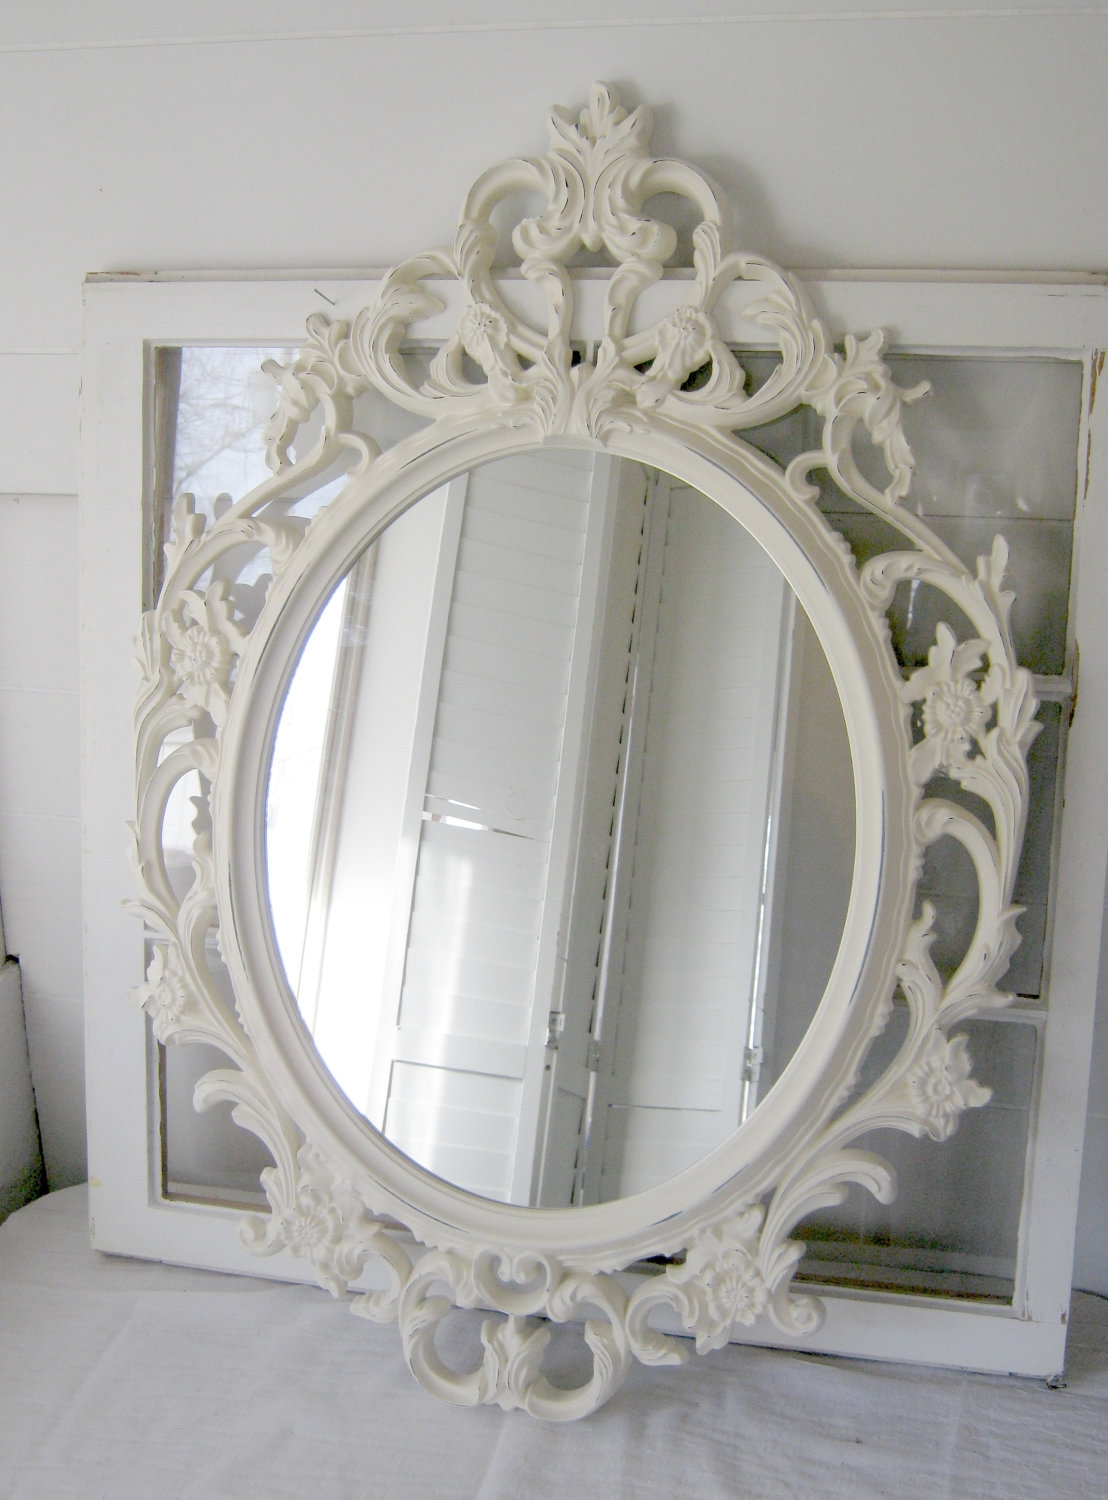 Shab Chic Baroque Oval Mirror Antique White Ornate Mirror Intended For Baroque White Mirror (Image 11 of 15)